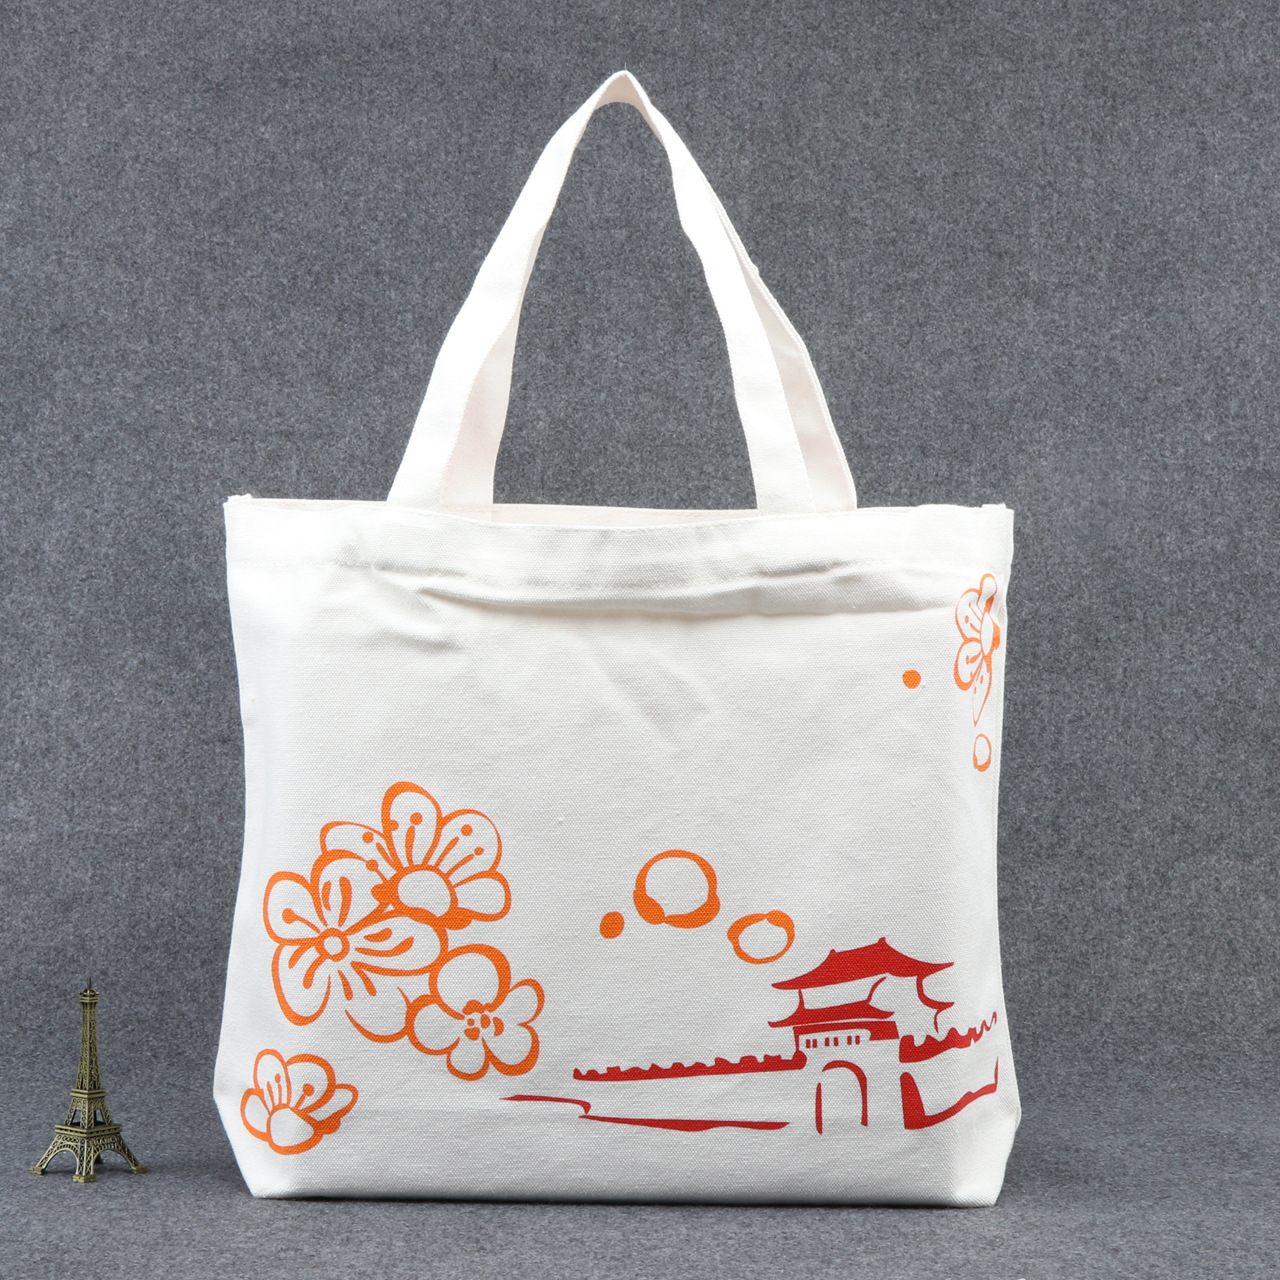 On Time Delivery Offered jute wine tote bag